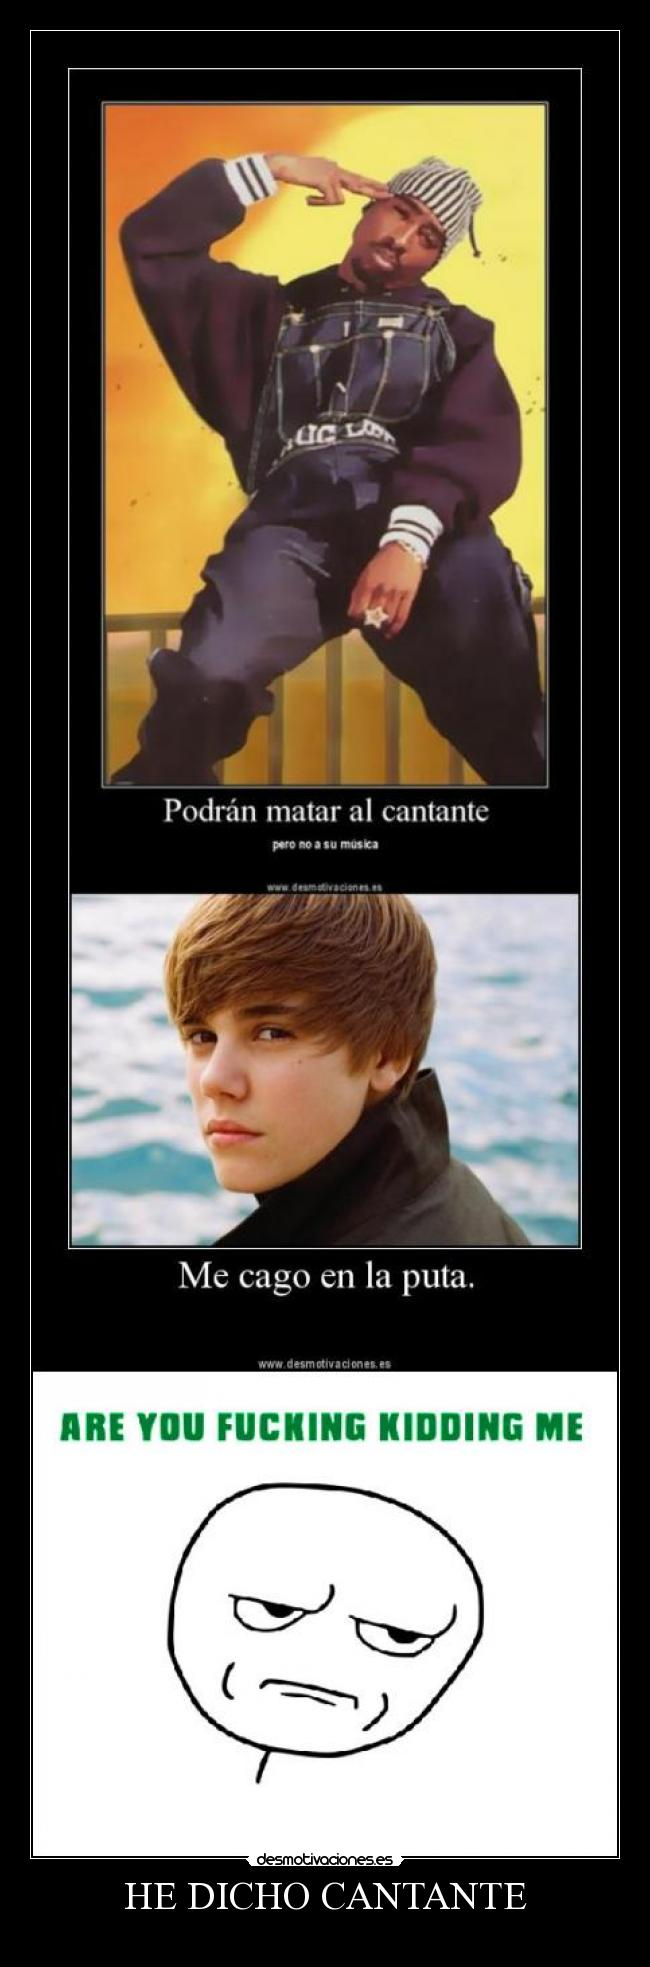 carteles musica cantantes justin bieber maricon are you fucking kidding desmotivaciones